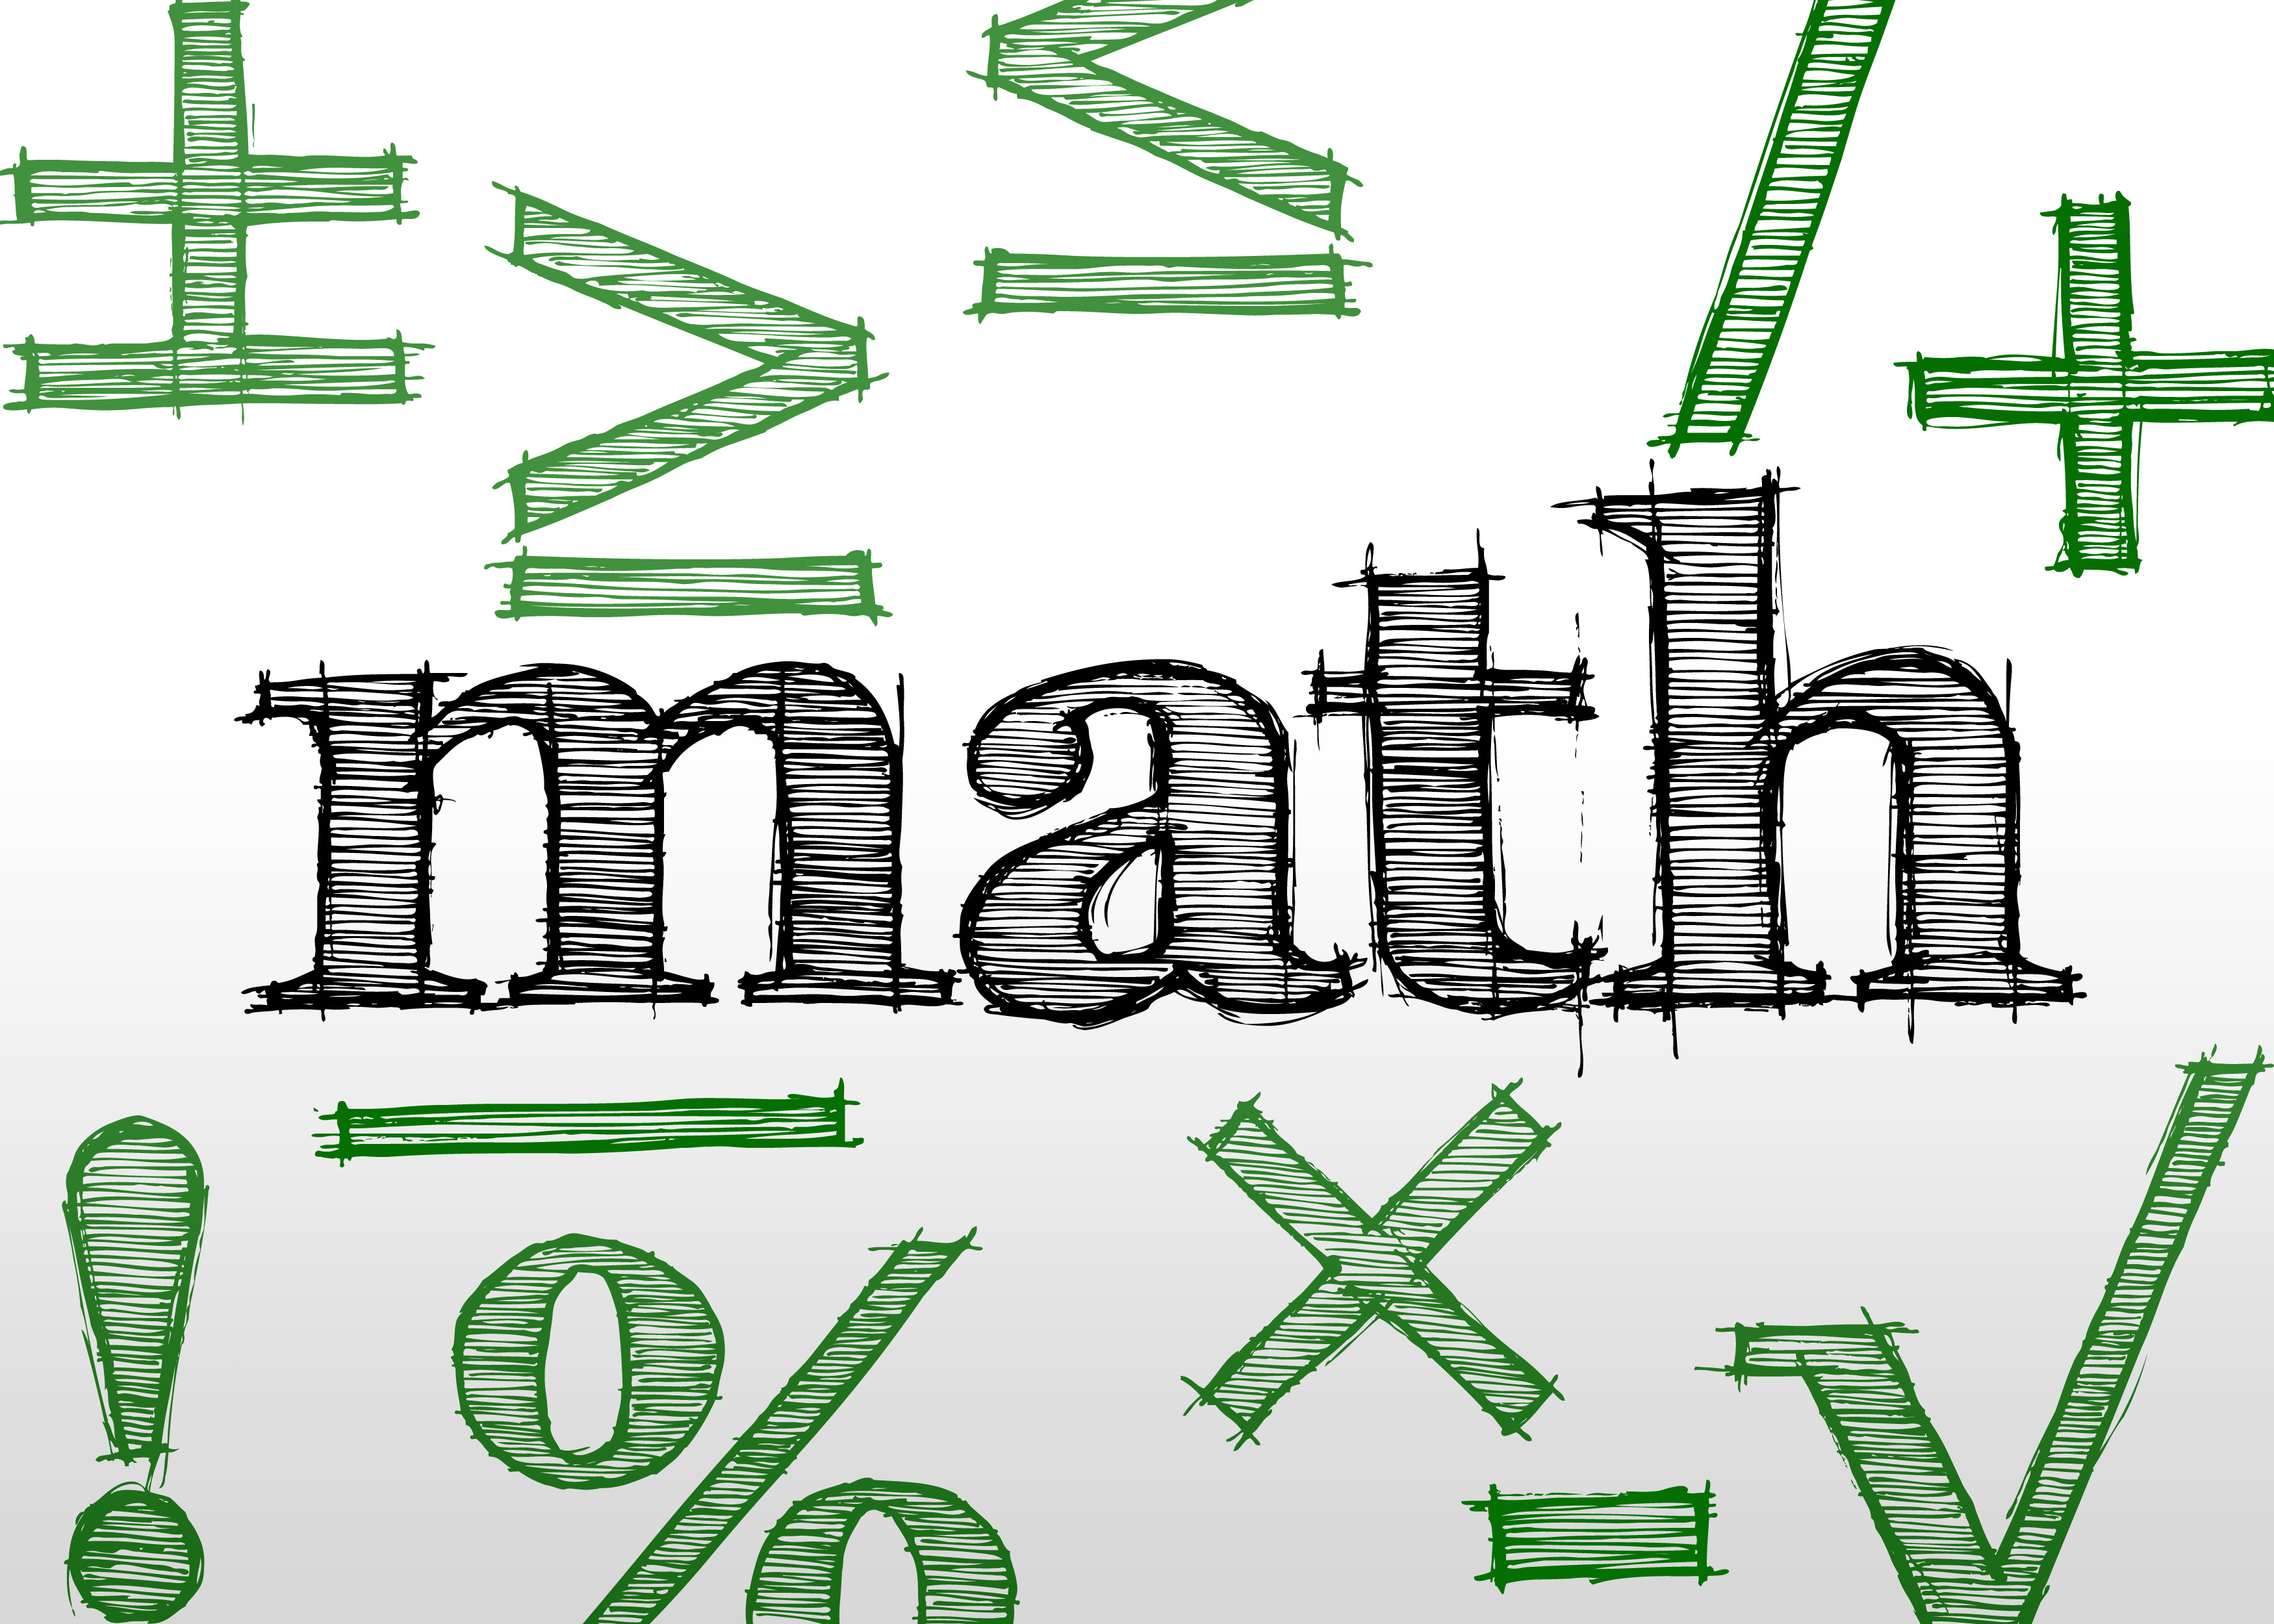 Free Stock Photo 1513-Learning Maths | freeimageslive